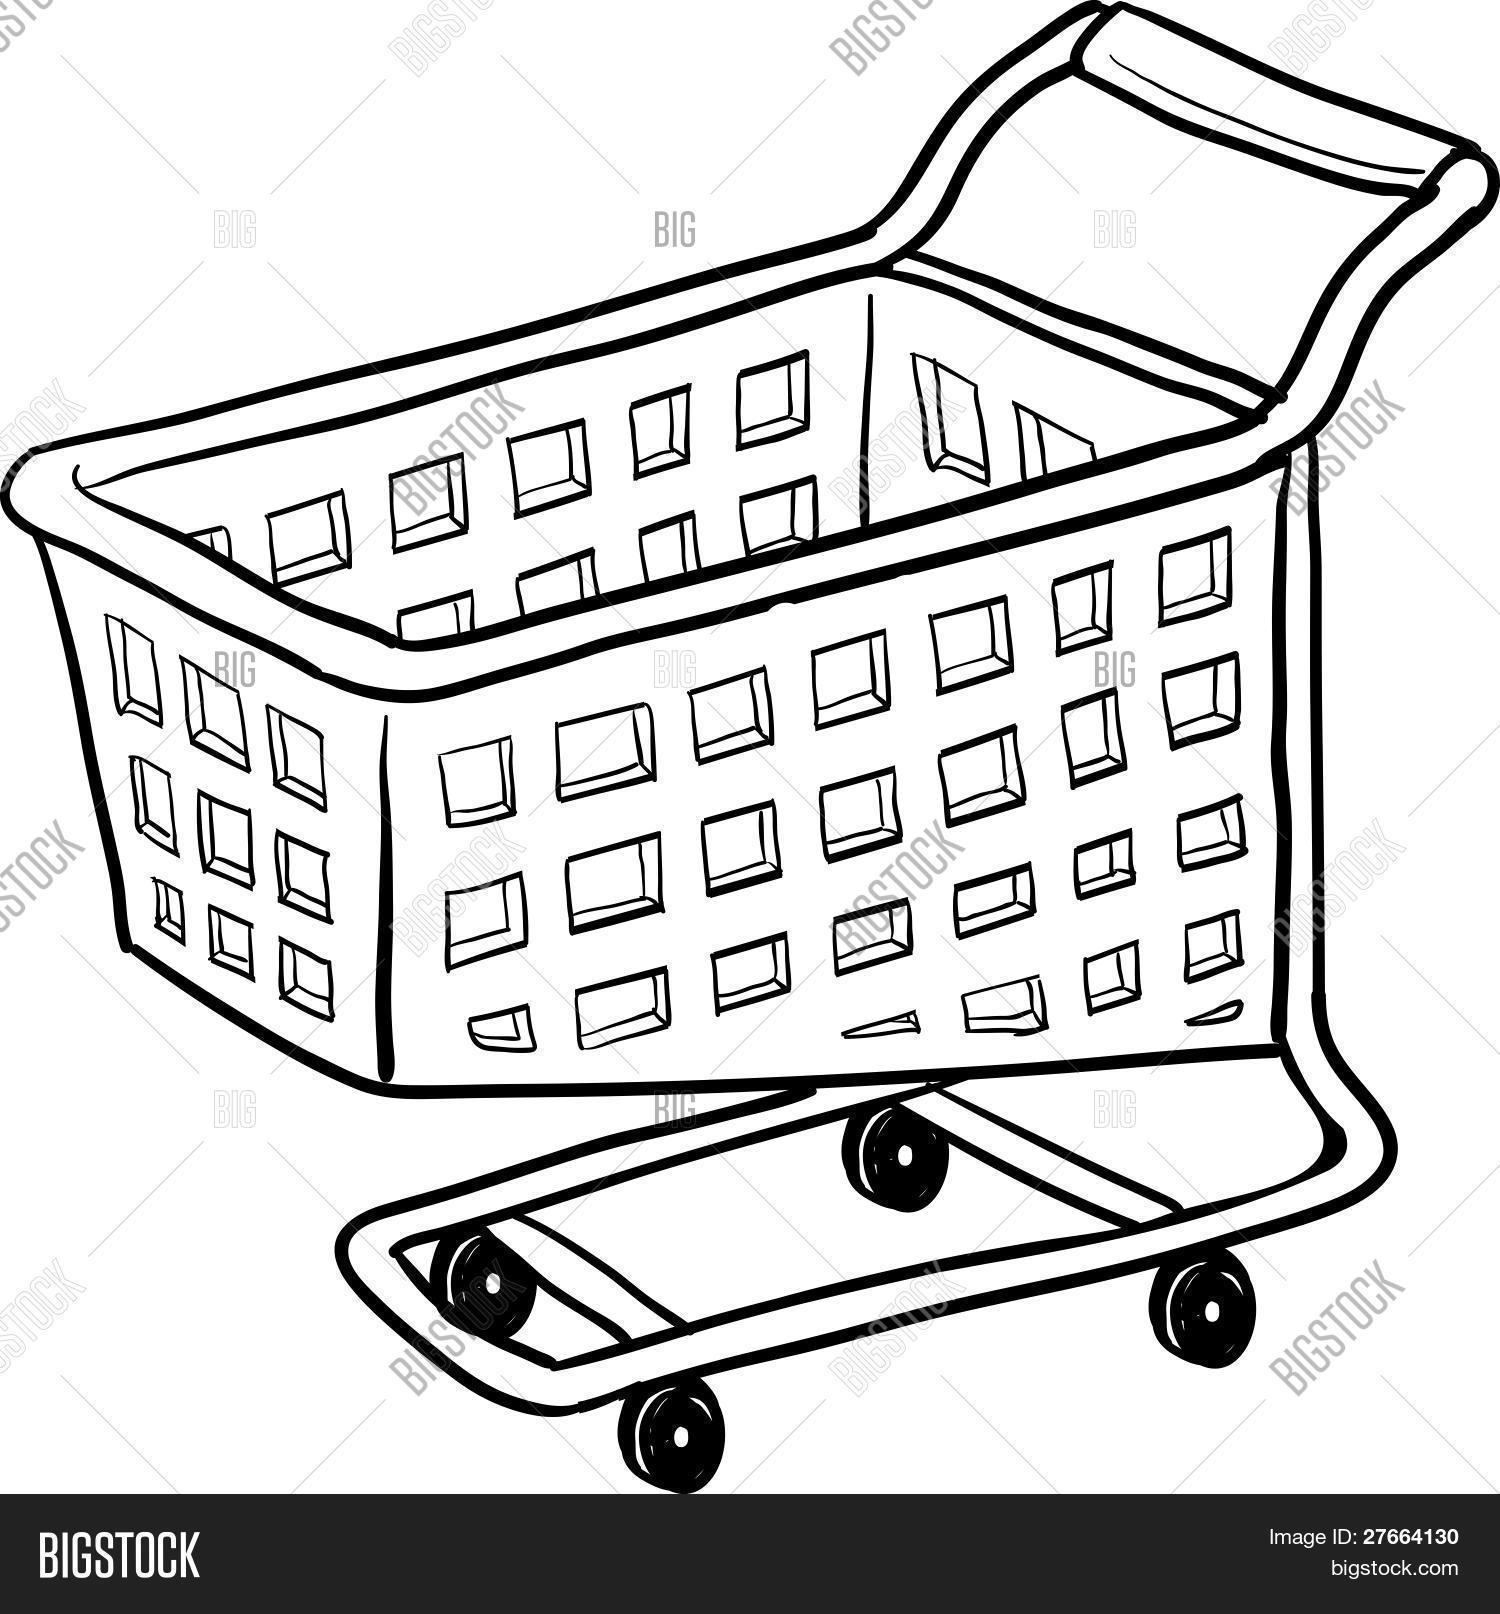 This is a graphic of Wild Shopping Cart Drawing